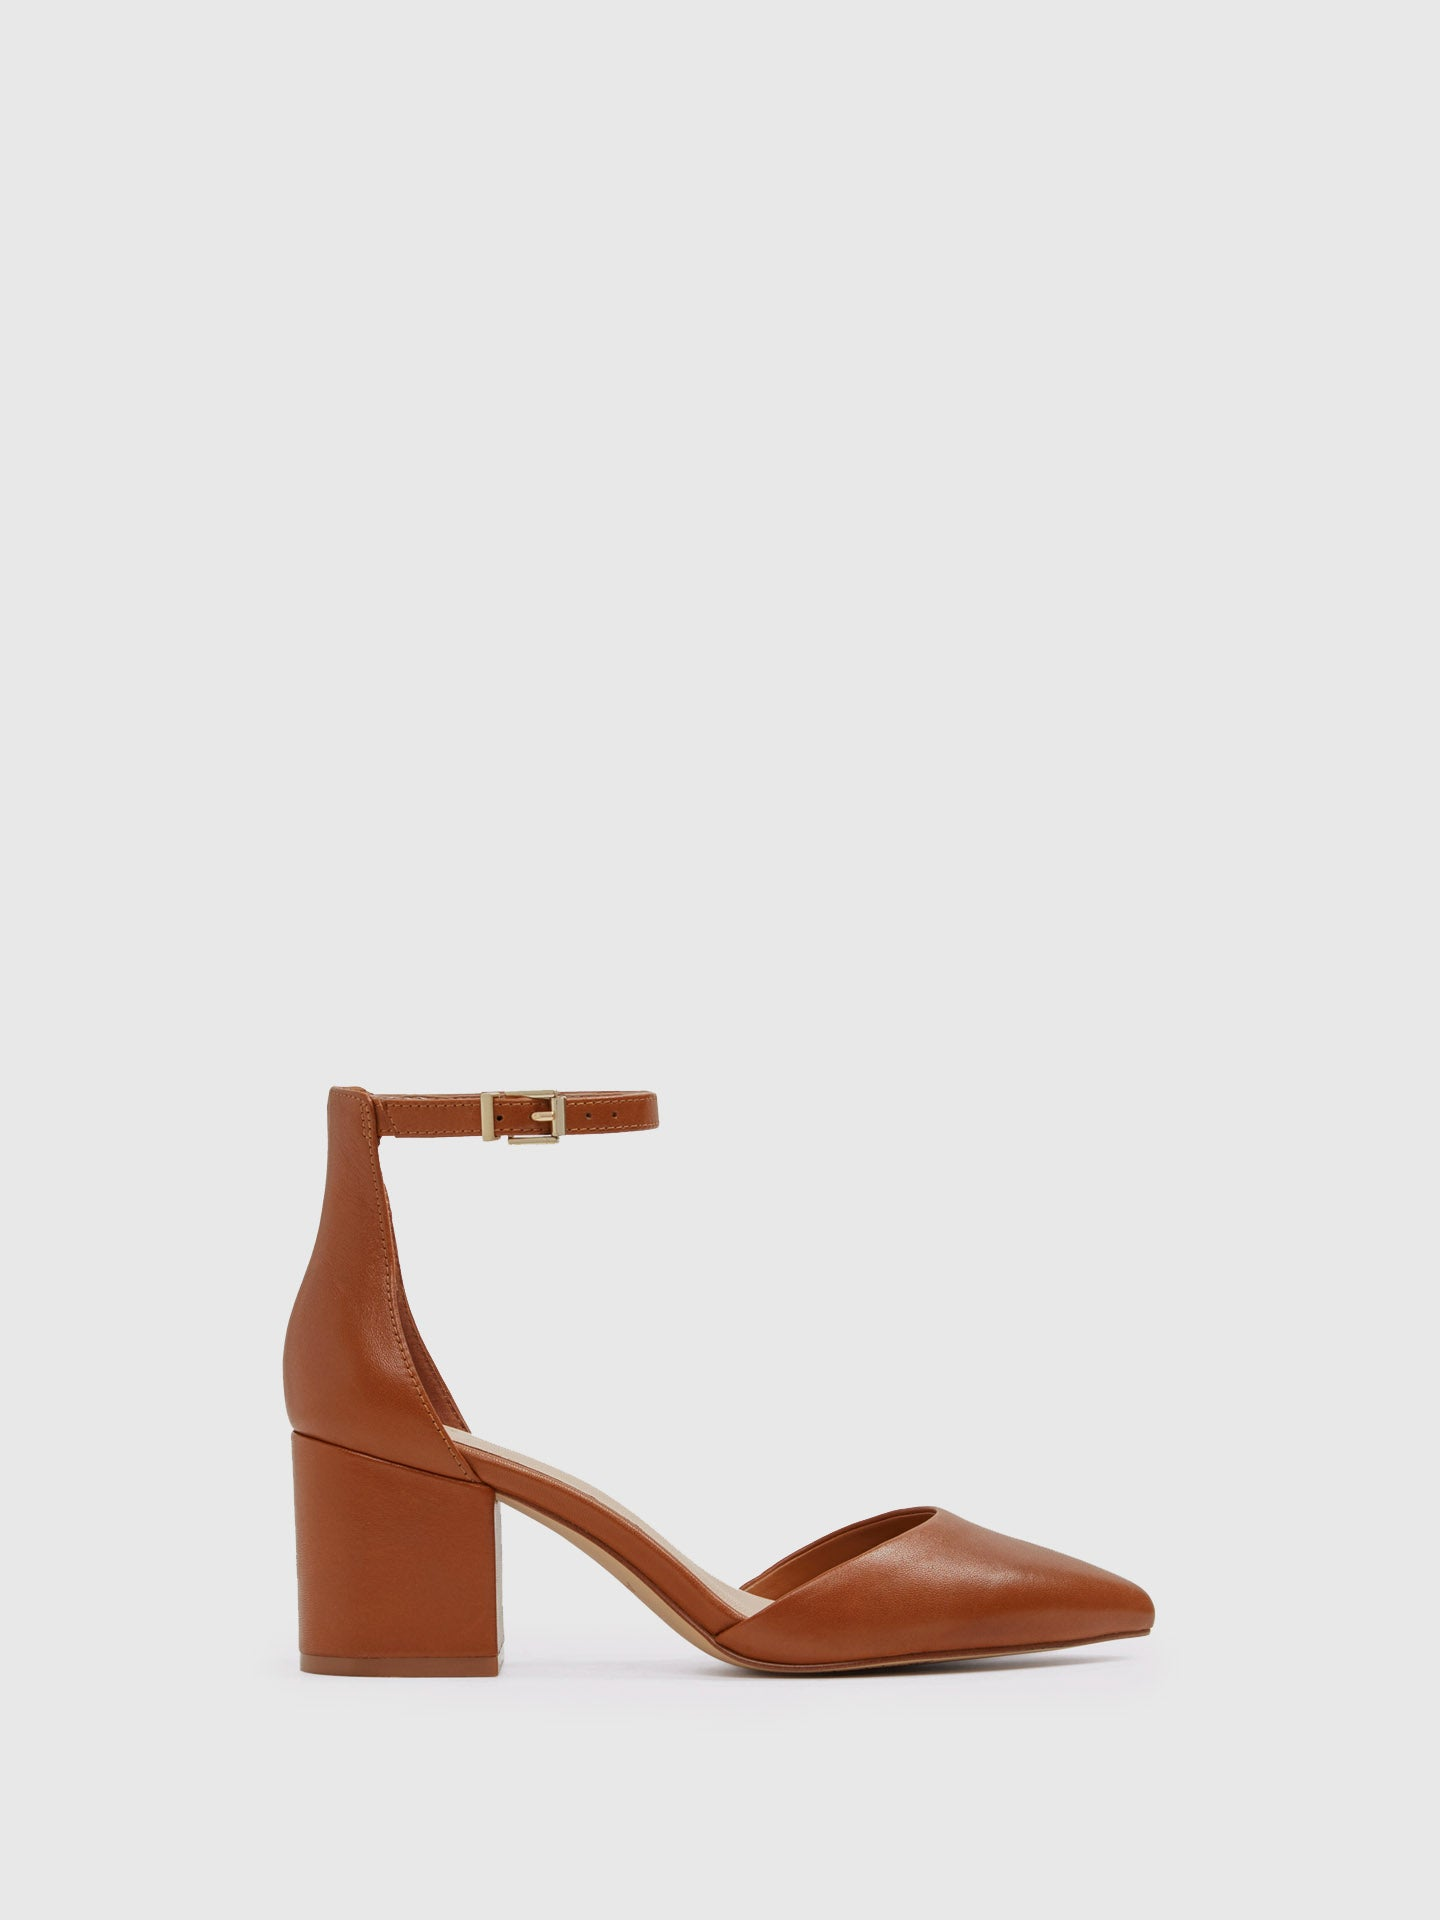 Aldo Maroon Ankle Strap Shoes